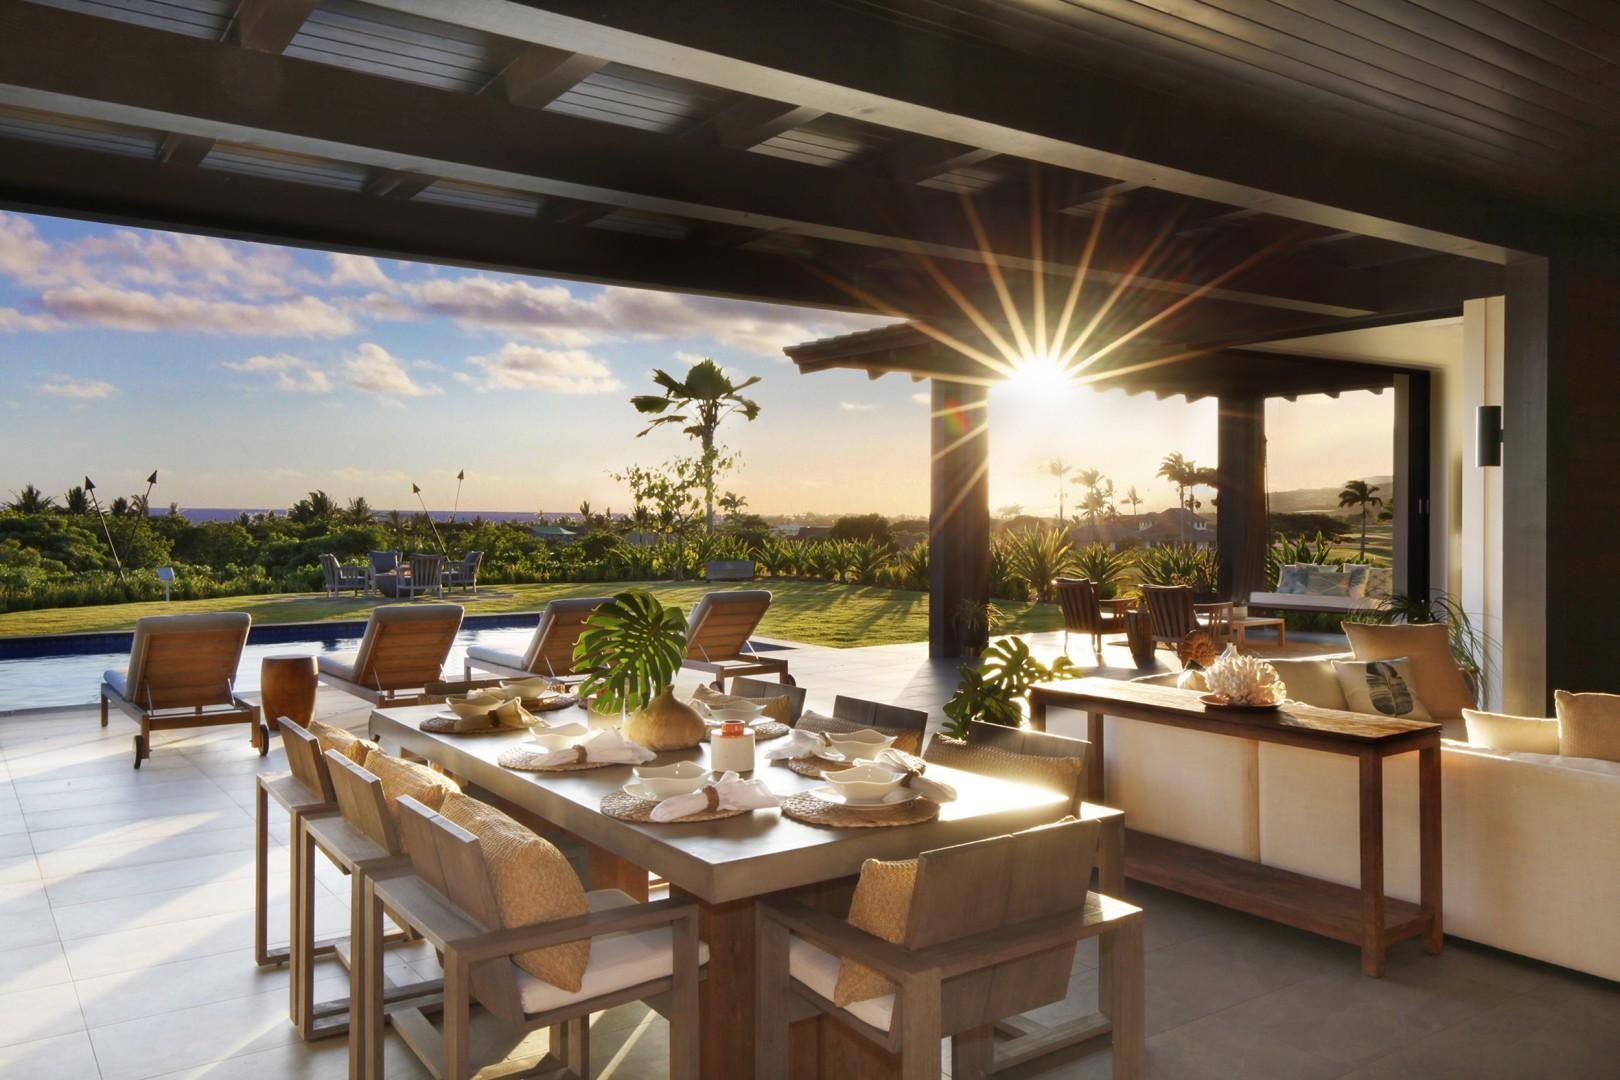 Outdoor living space with beautiful ocean and sunset views.